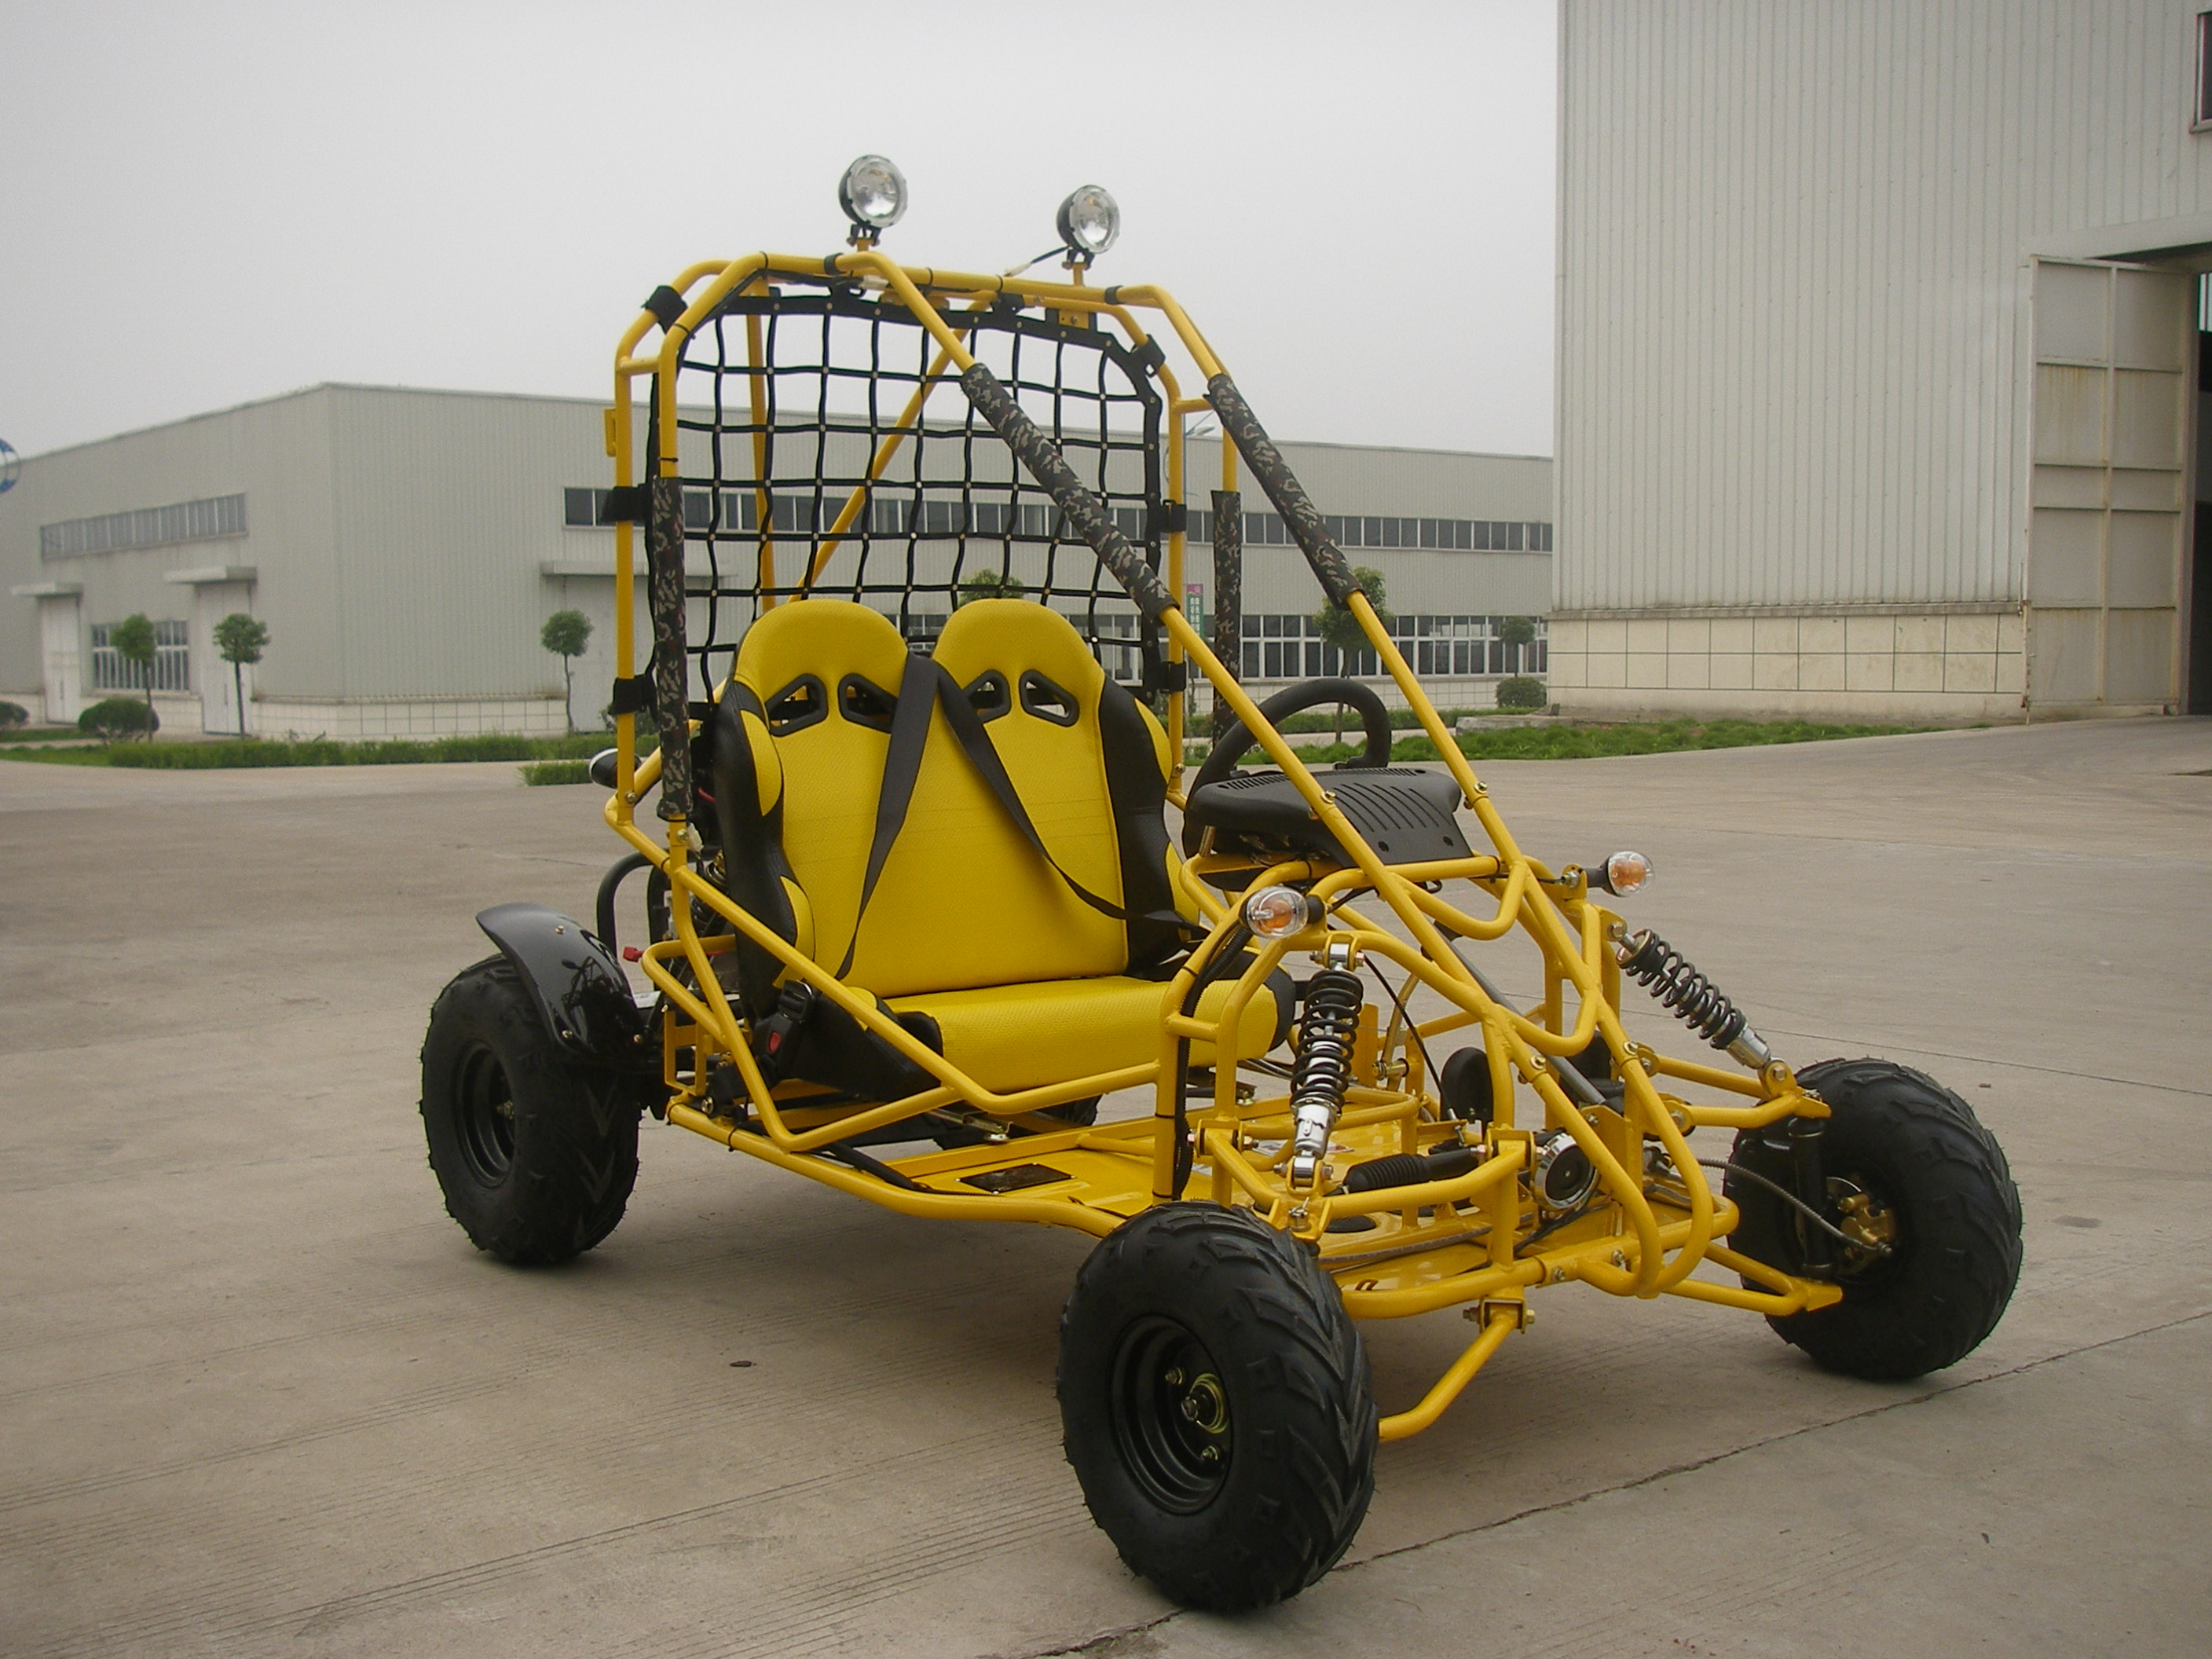 GK-SPIDER110-YELLOW2